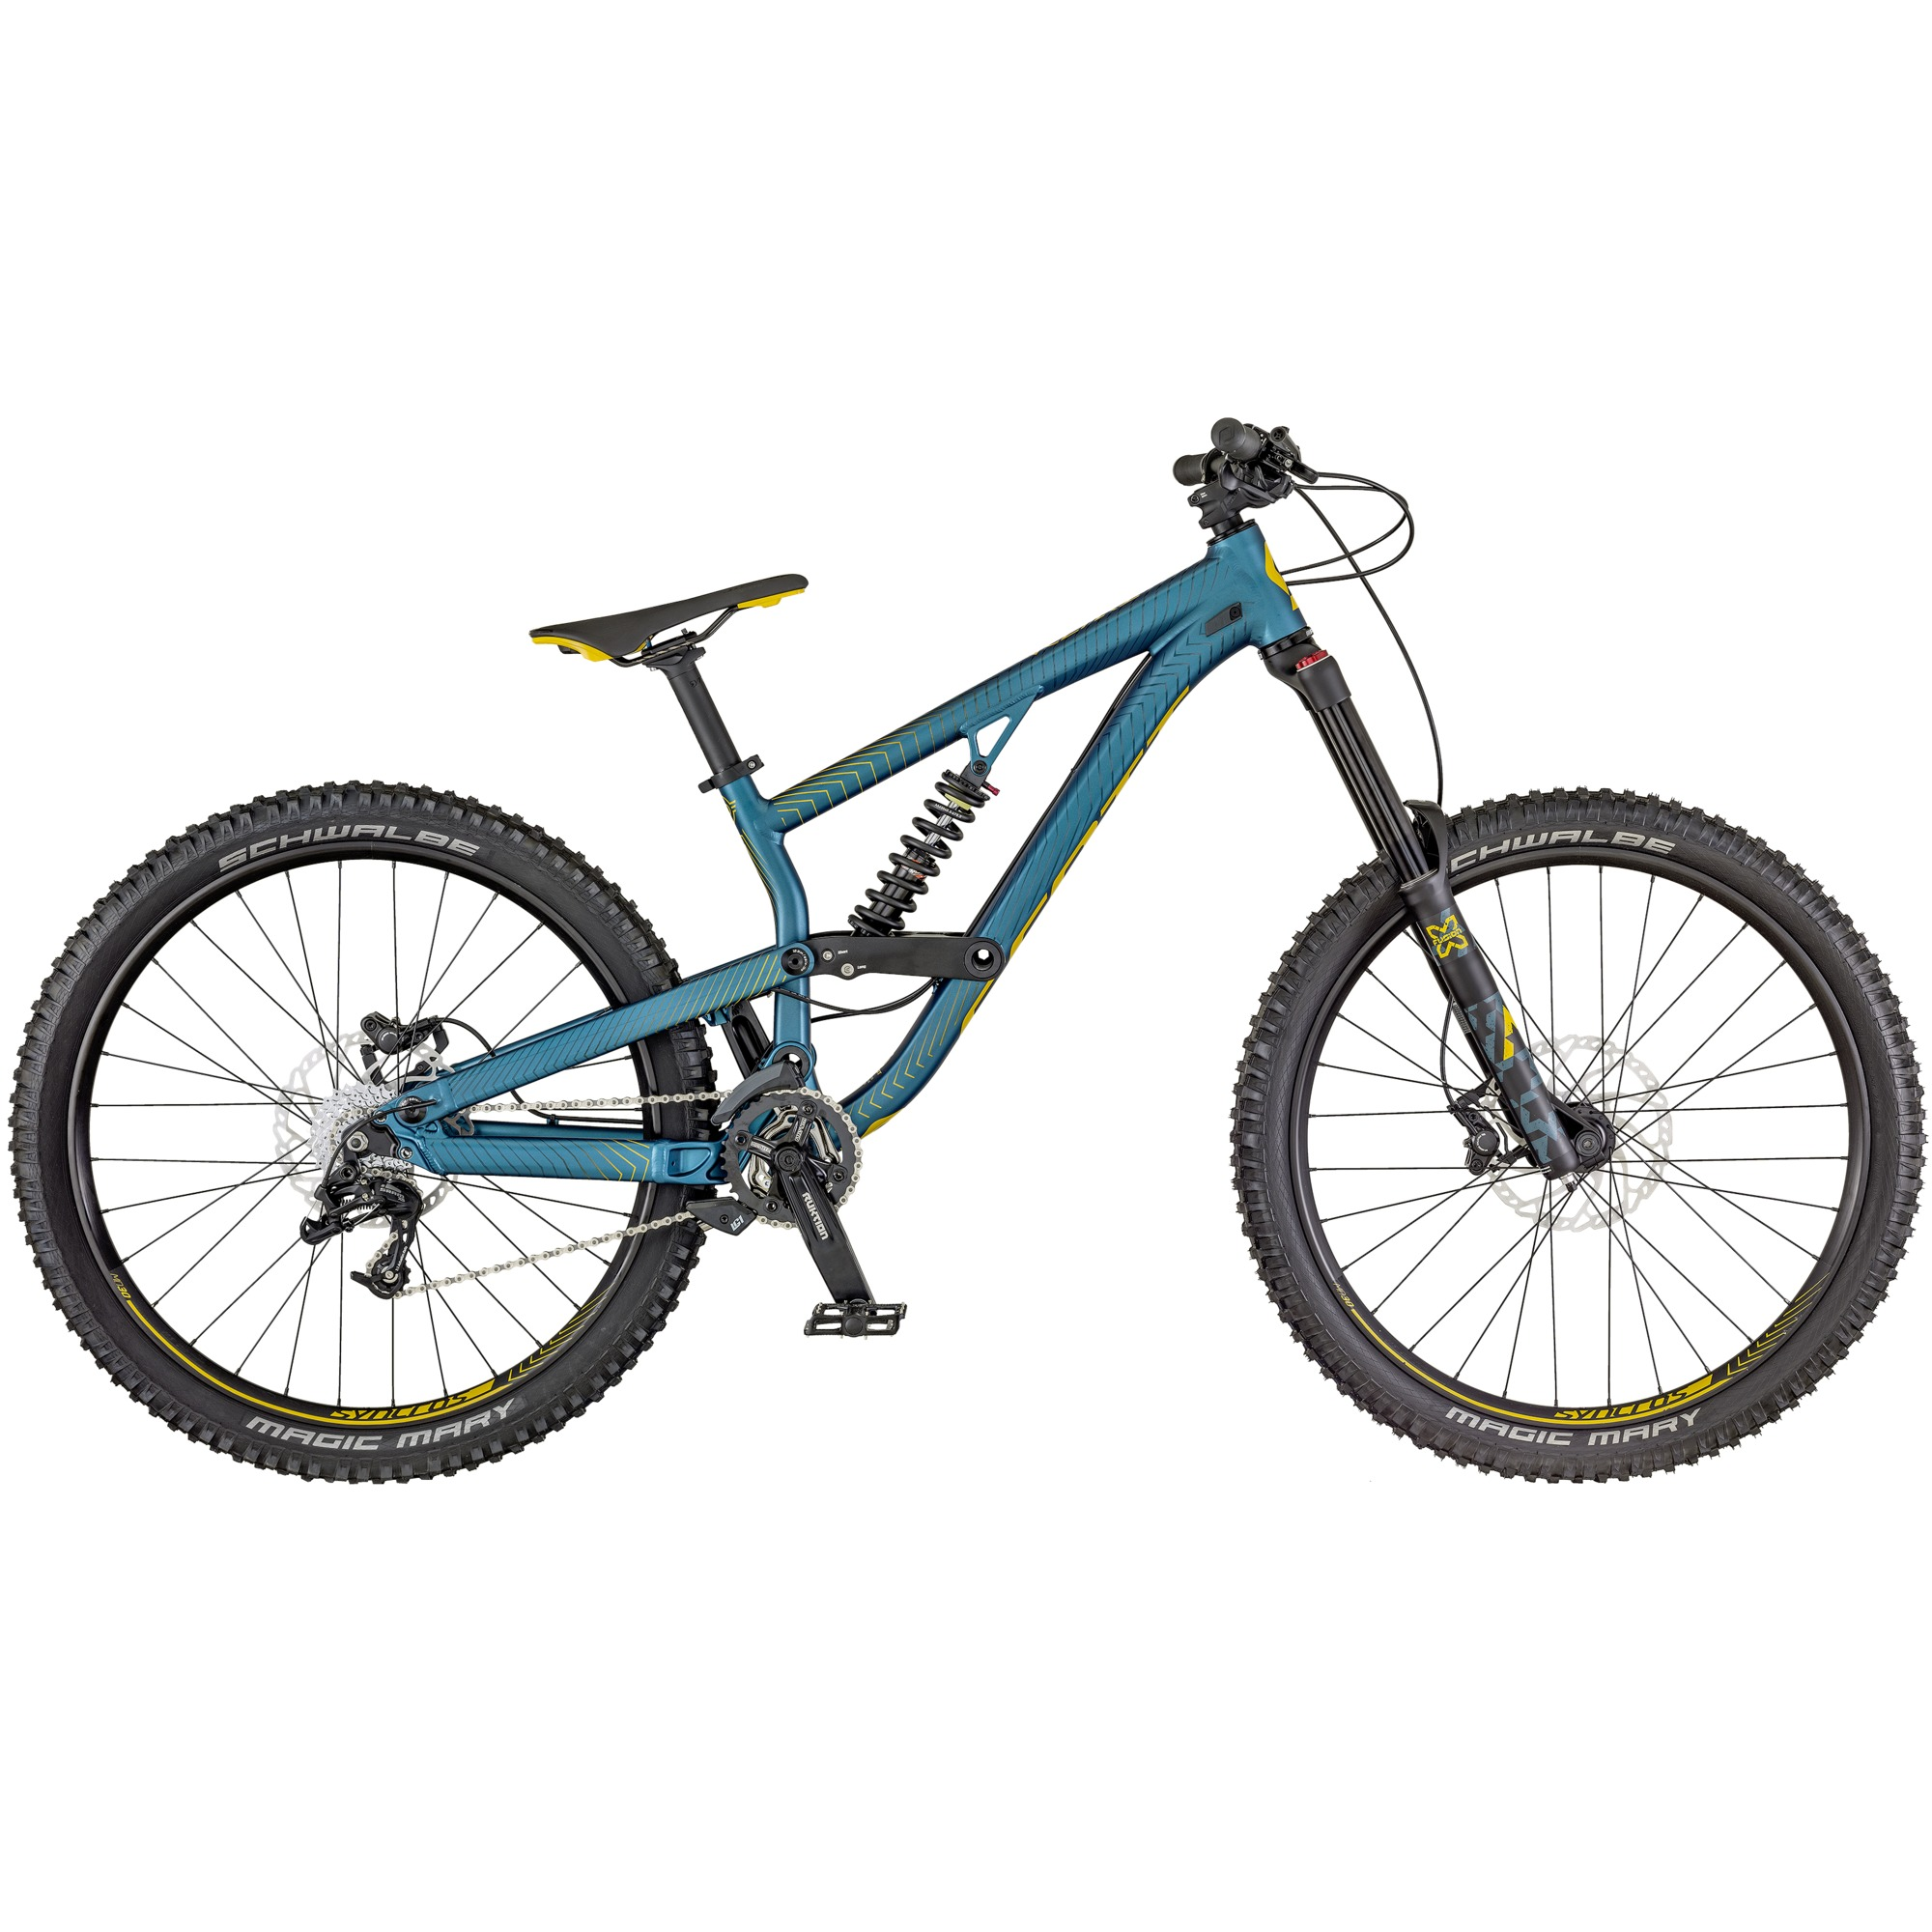 SCOTT Voltage FR 720 Bike L - Zweirad Homann